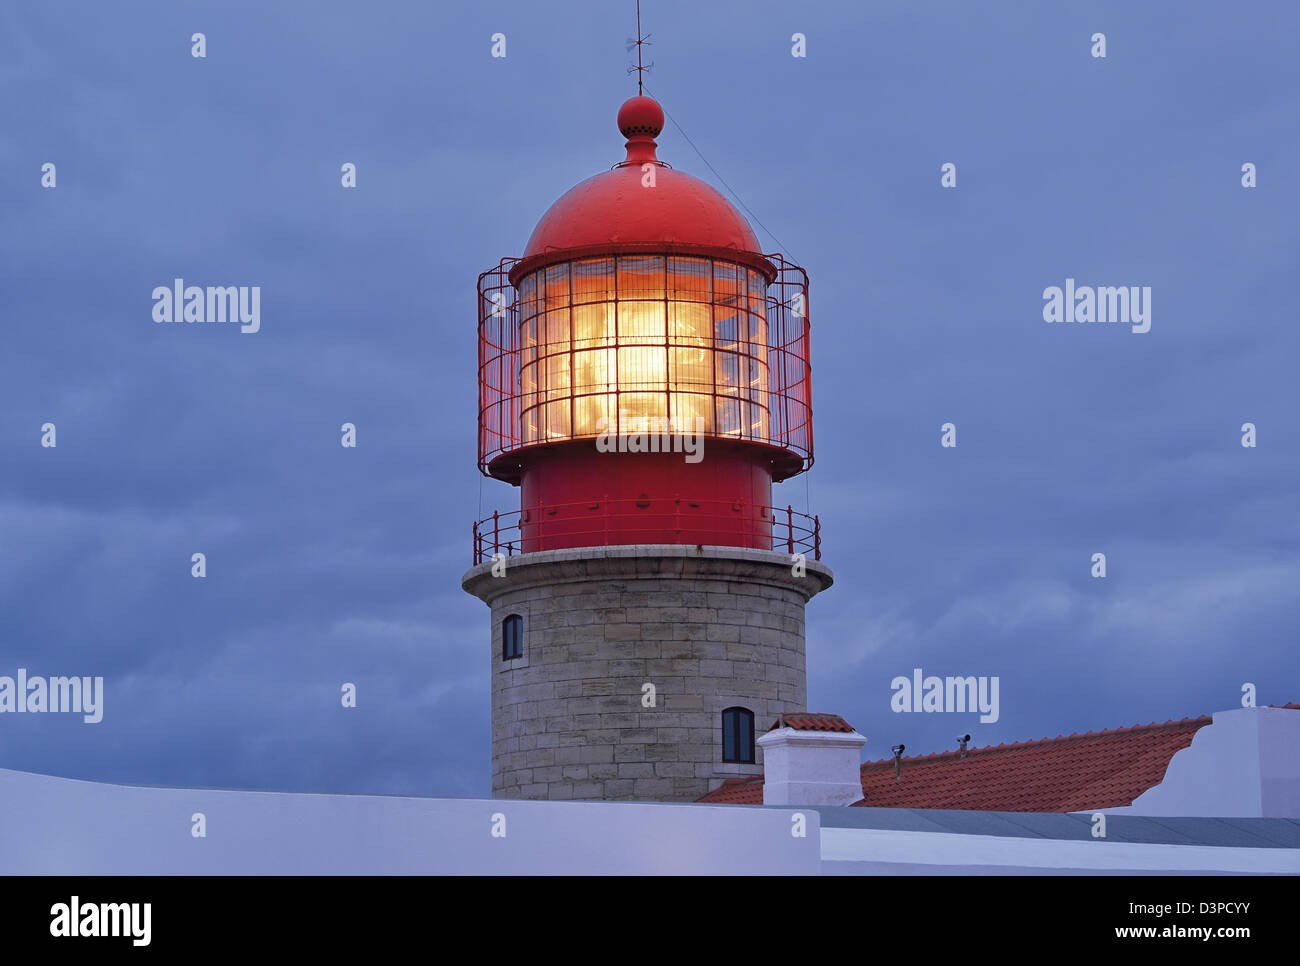 Portugal, Algarve: Top of the Lighthouse at Cape St. Vincent with light Stock Photo